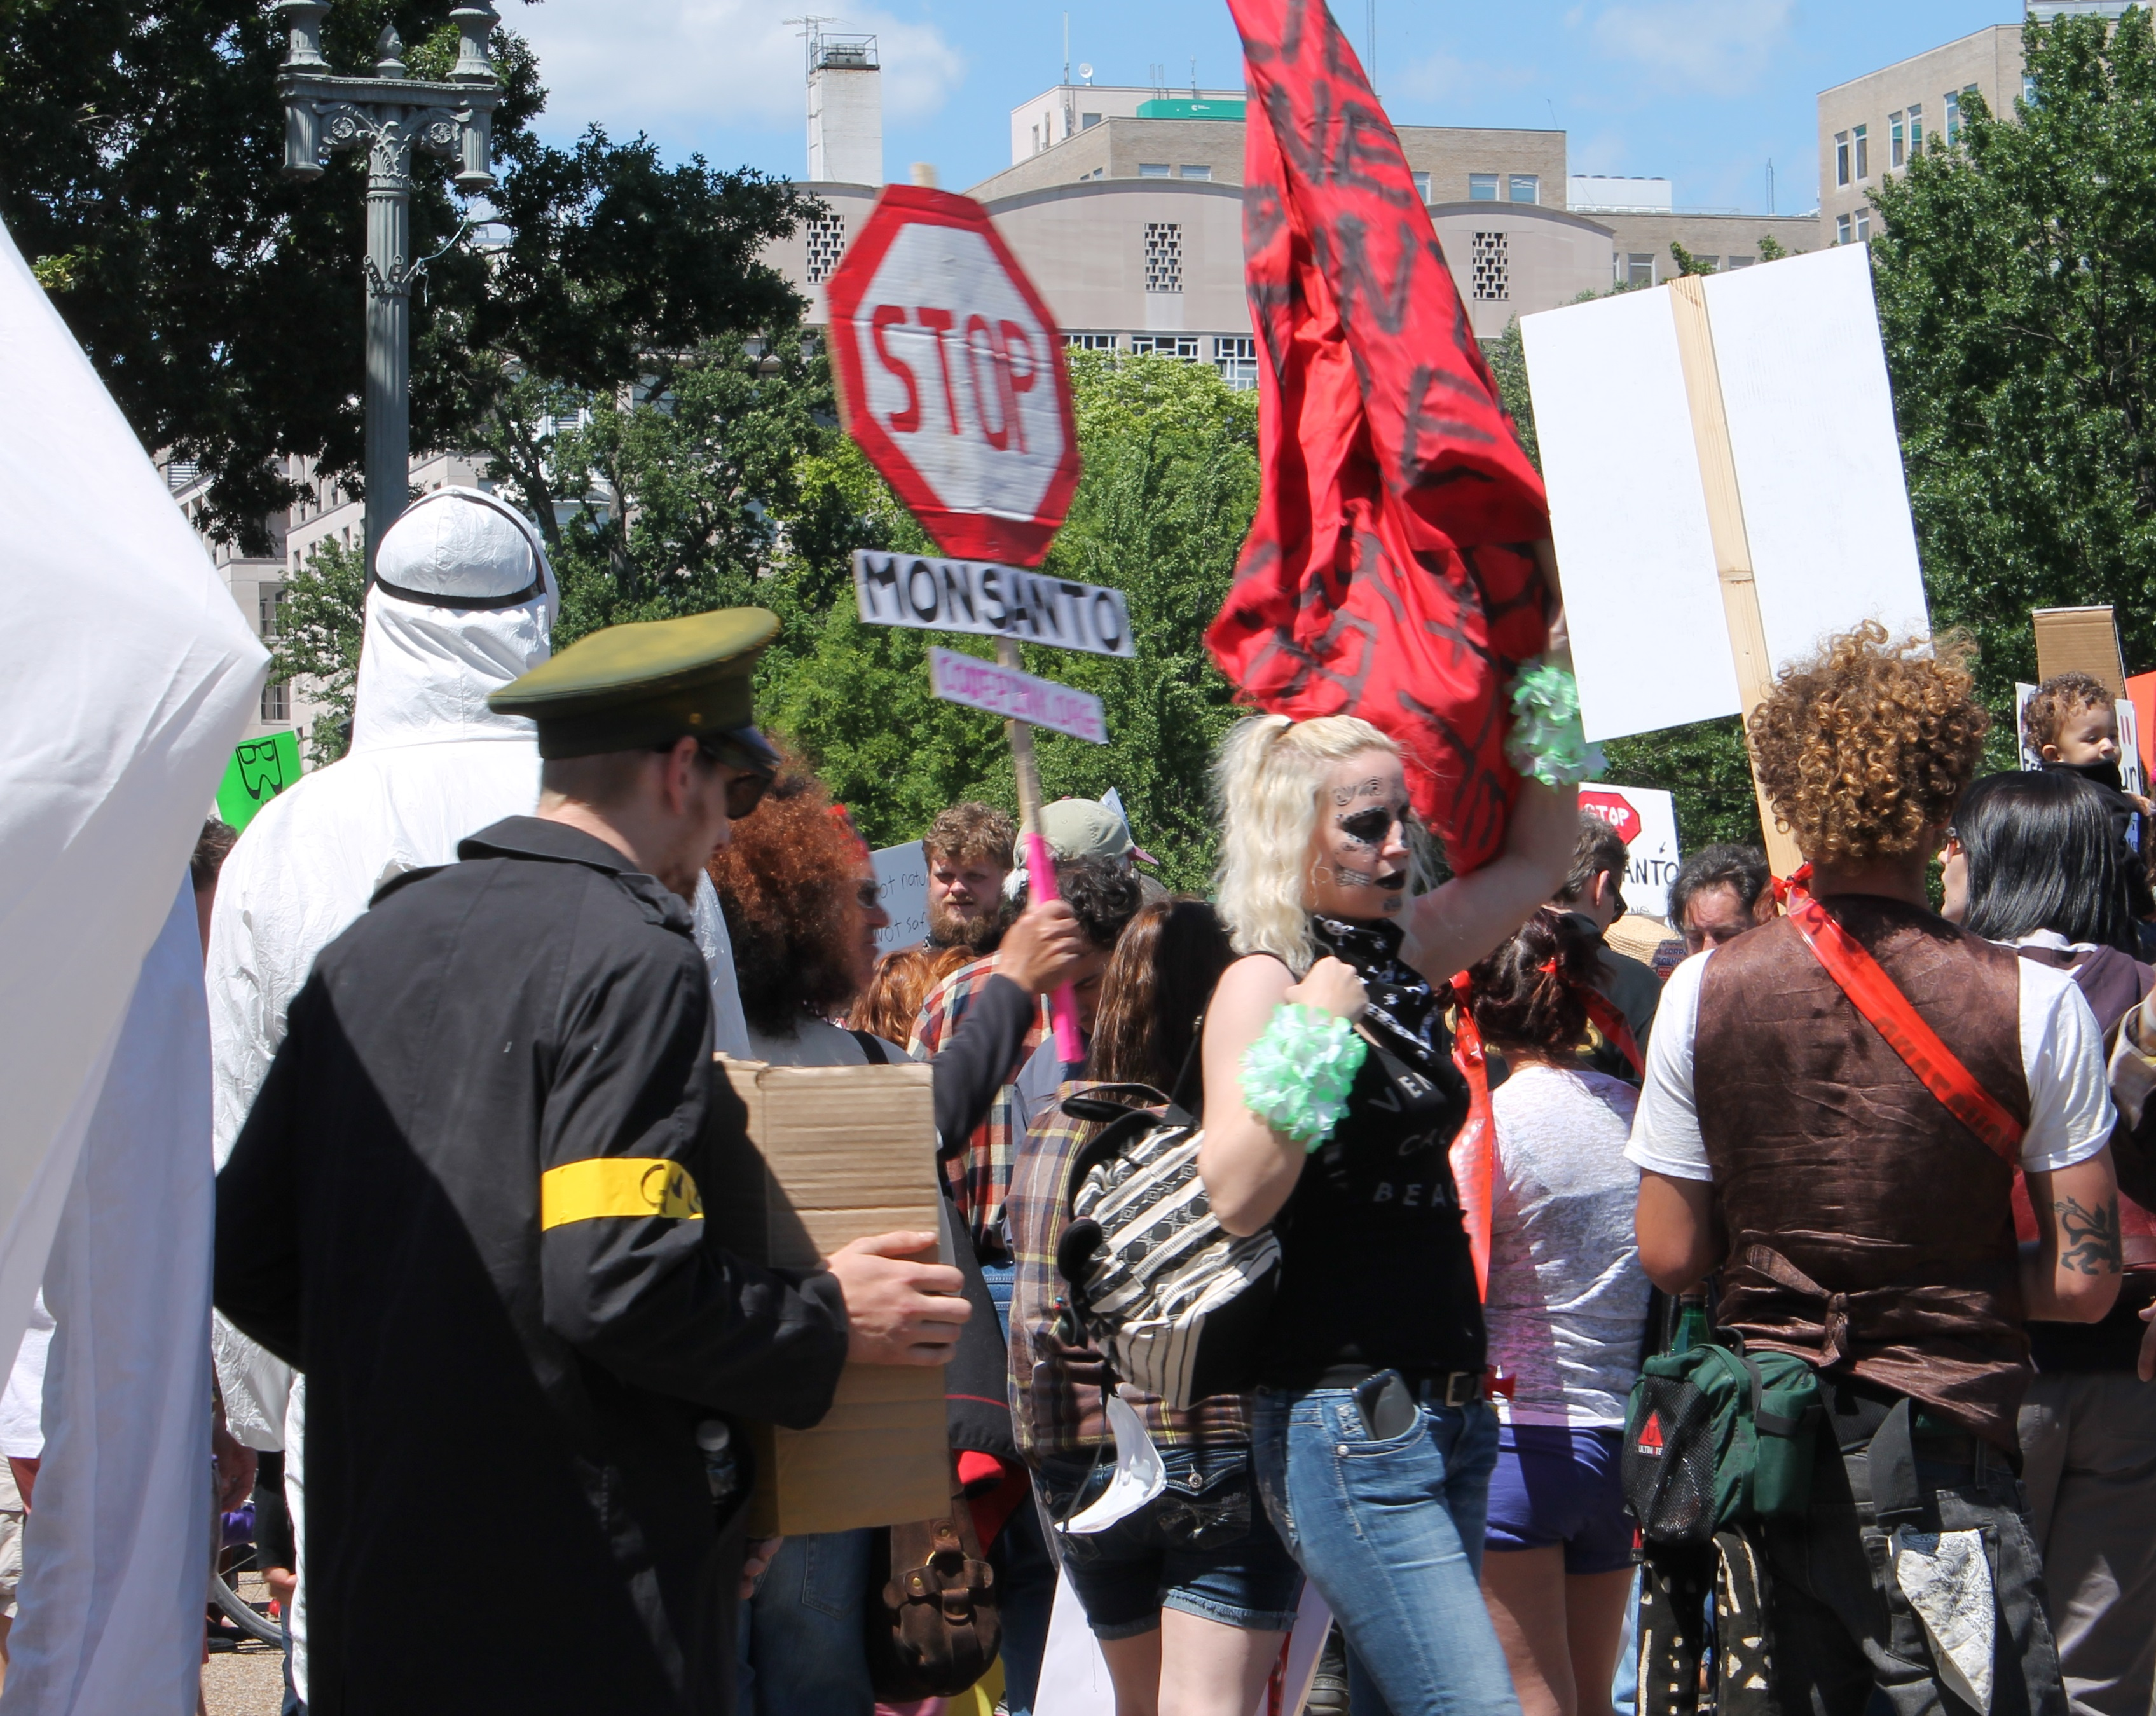 """A group of protesters. One holds a stop sign that says """"Stop Monsanto""""."""